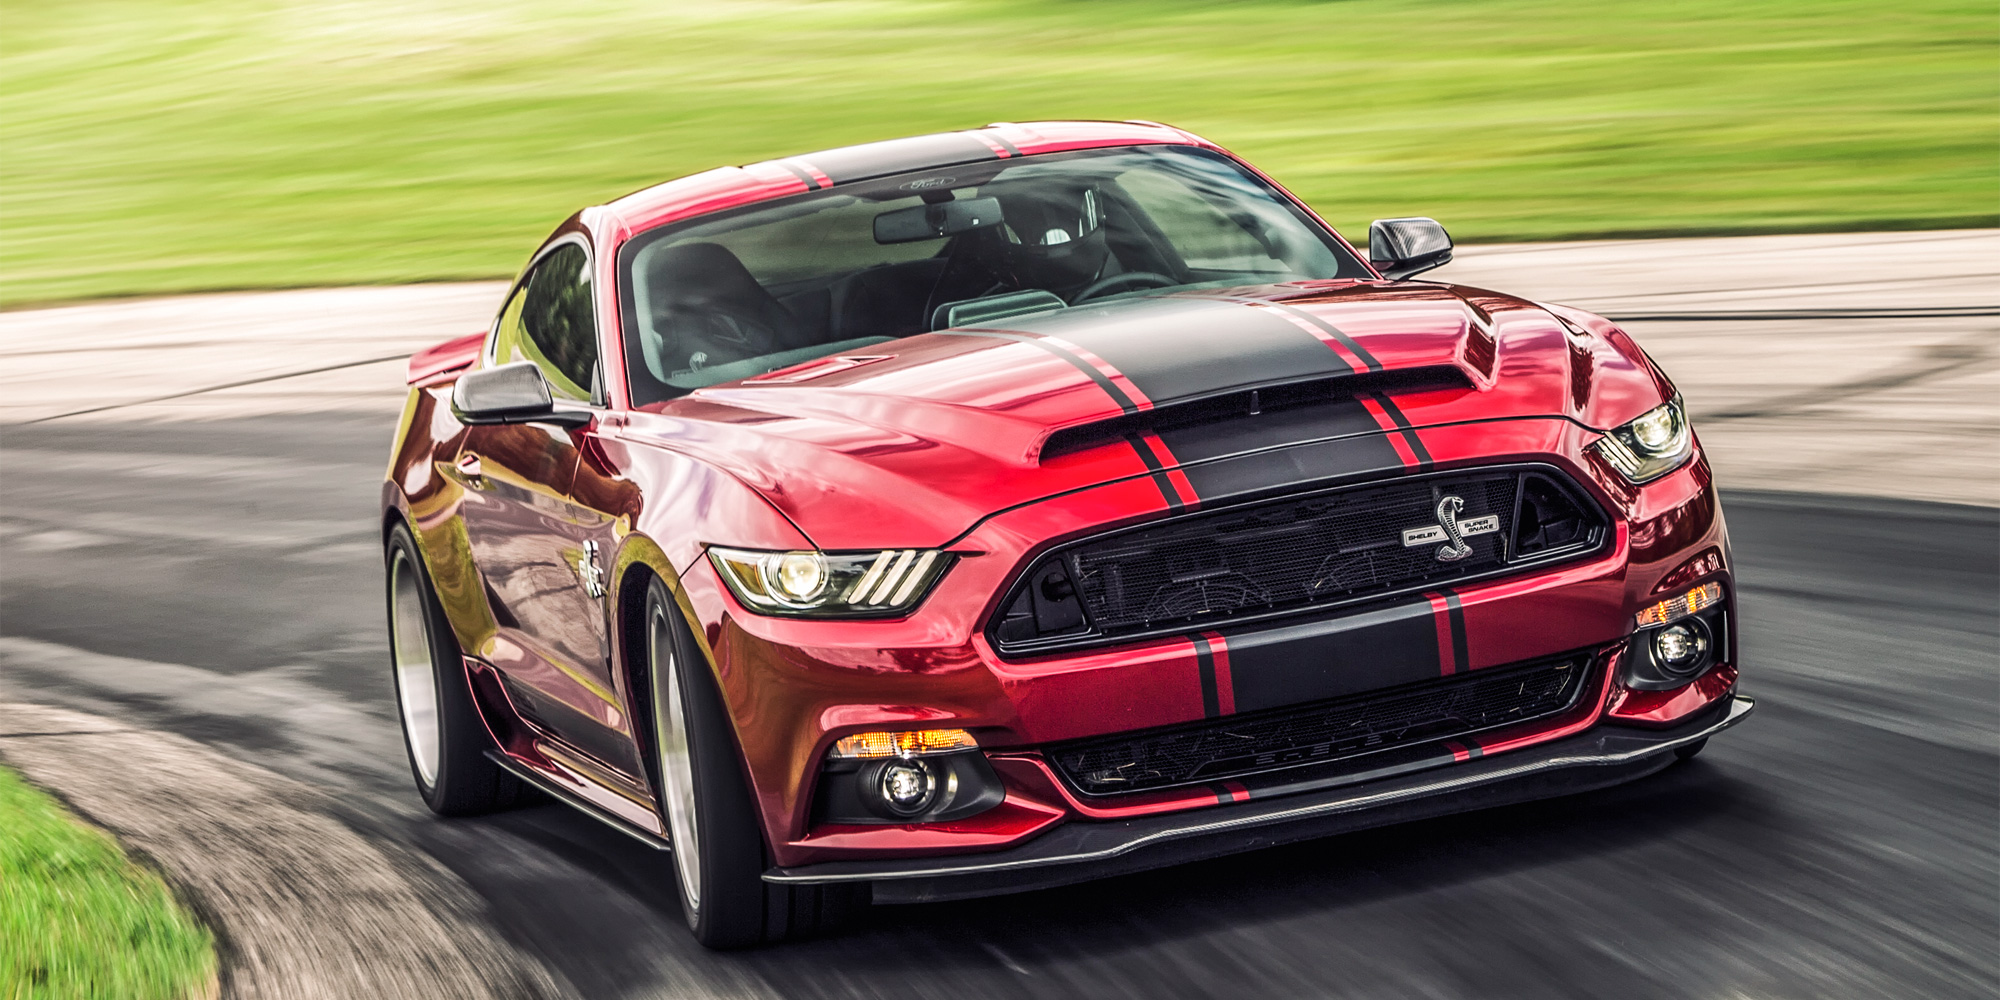 2016 Ford Mustang Shelby Gt350r Gt500 Super Snake